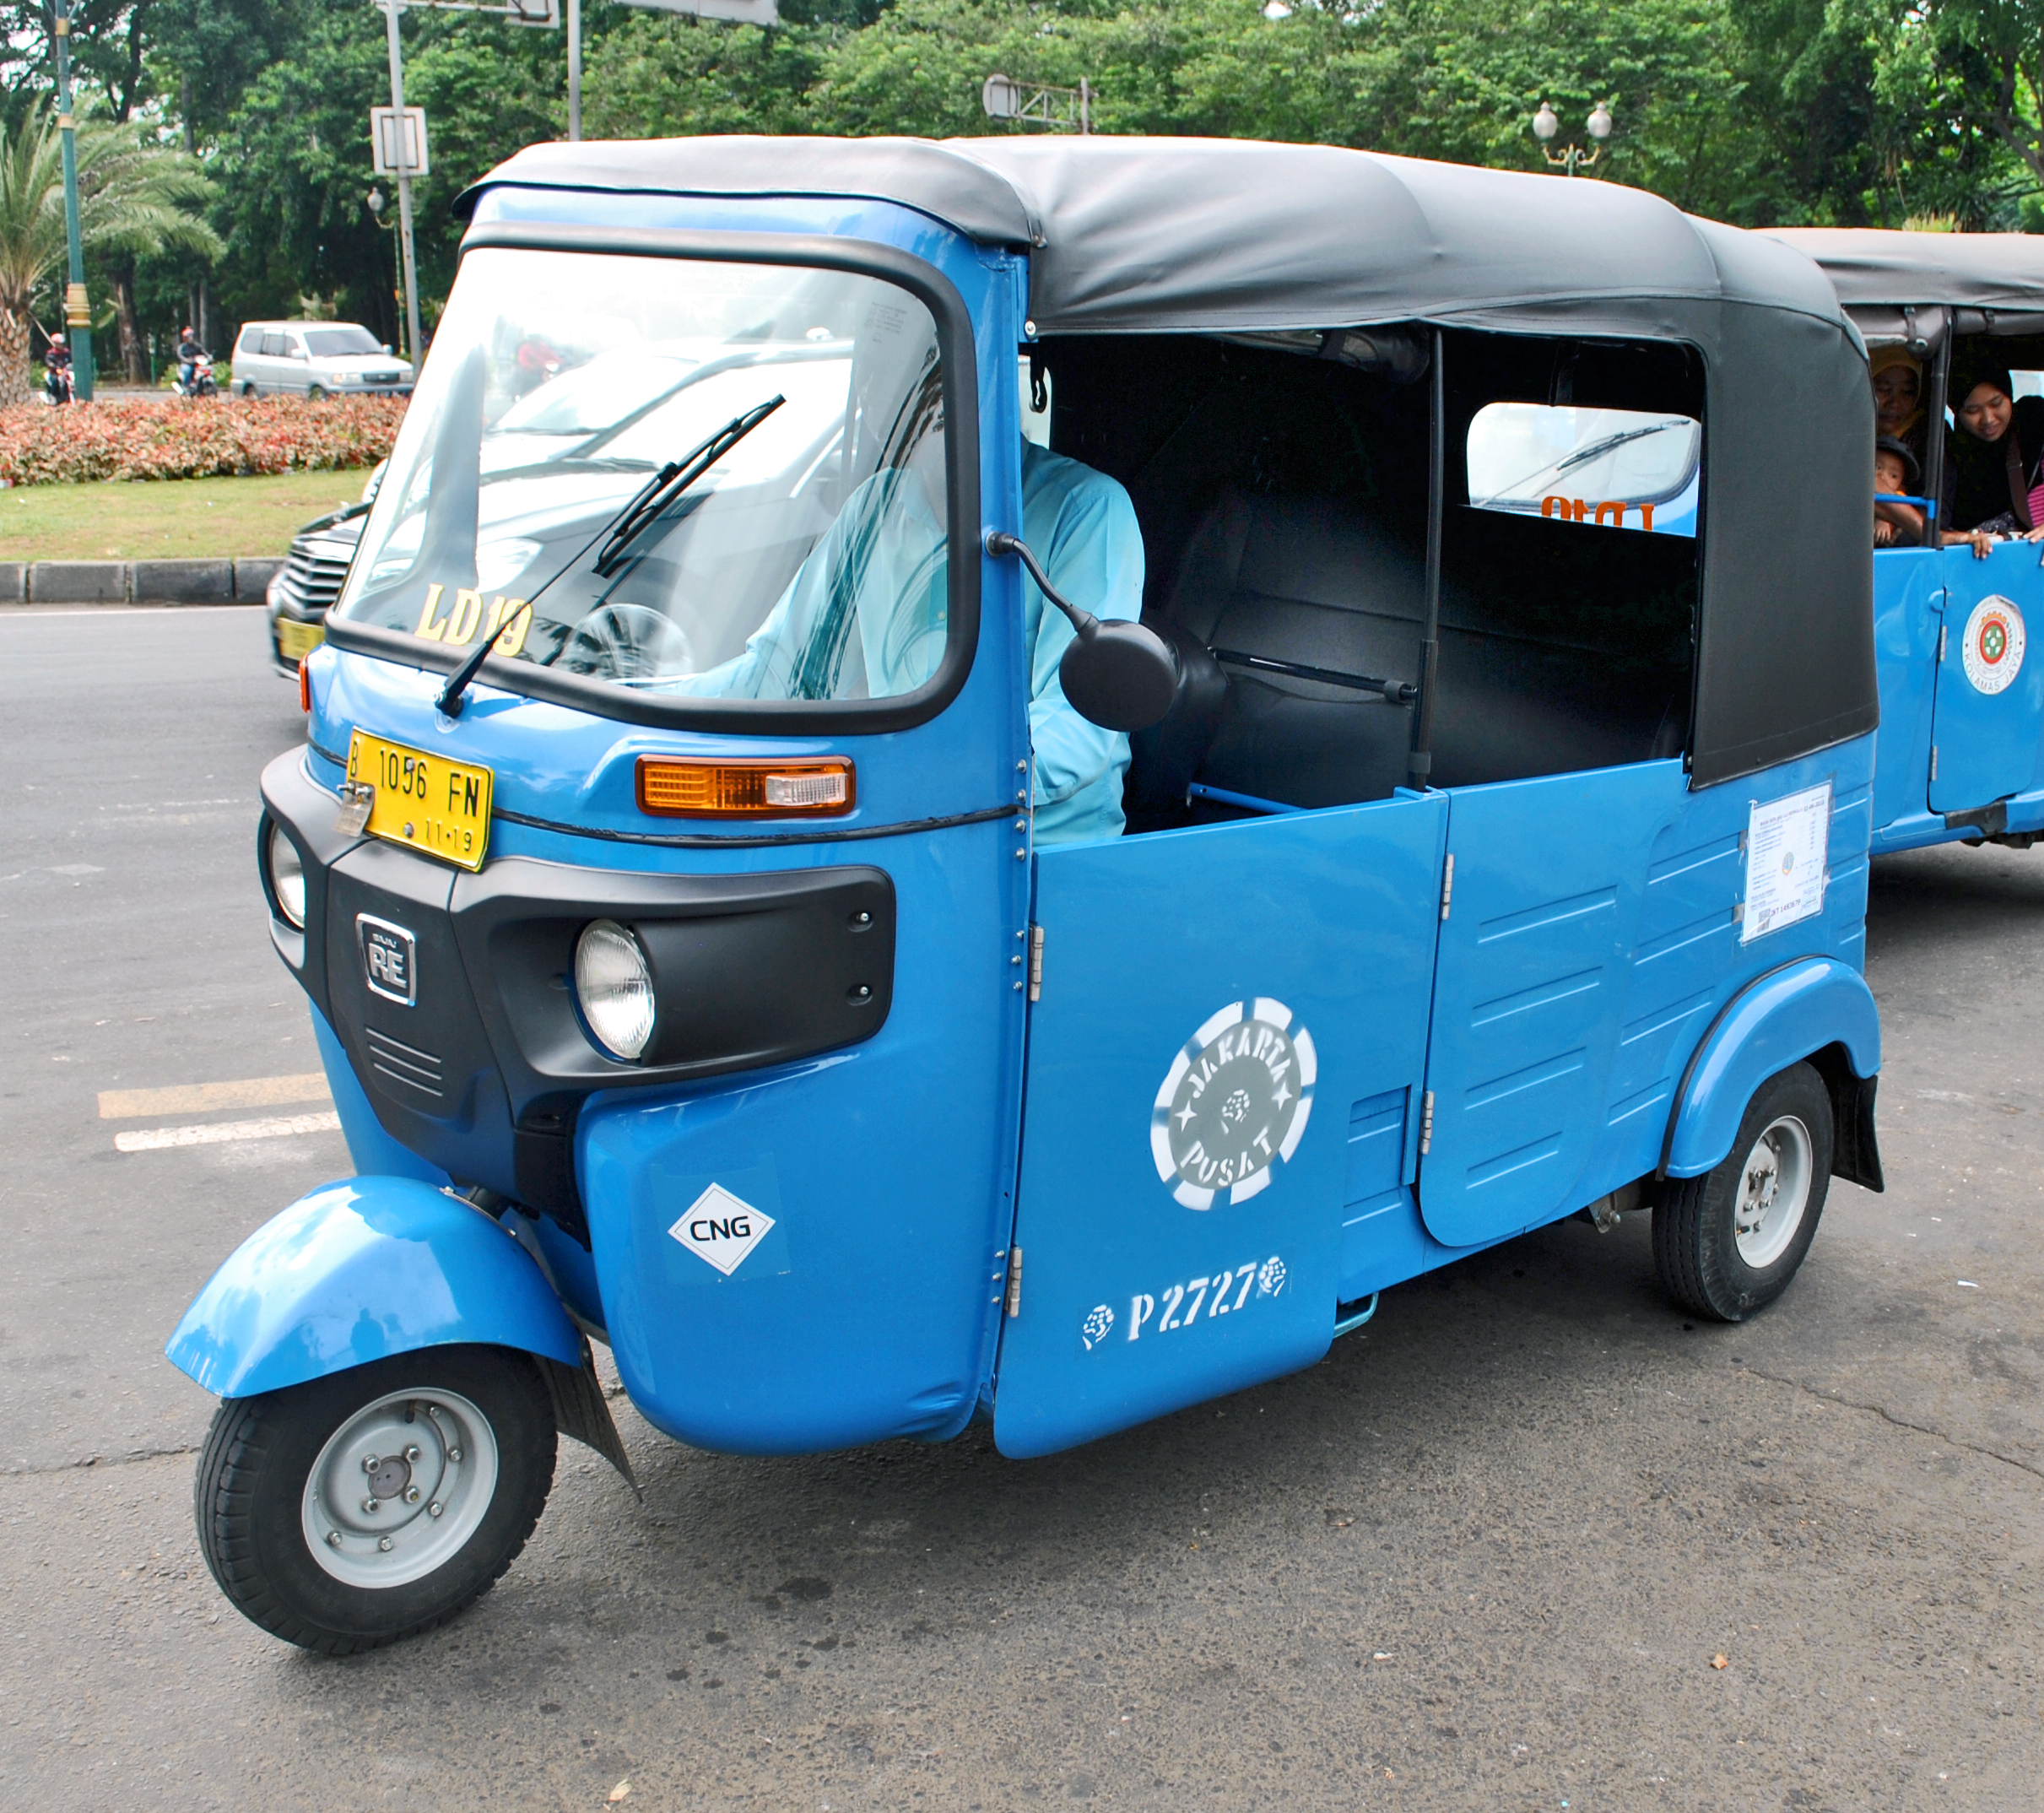 Bajaj Car Price In Pakistan